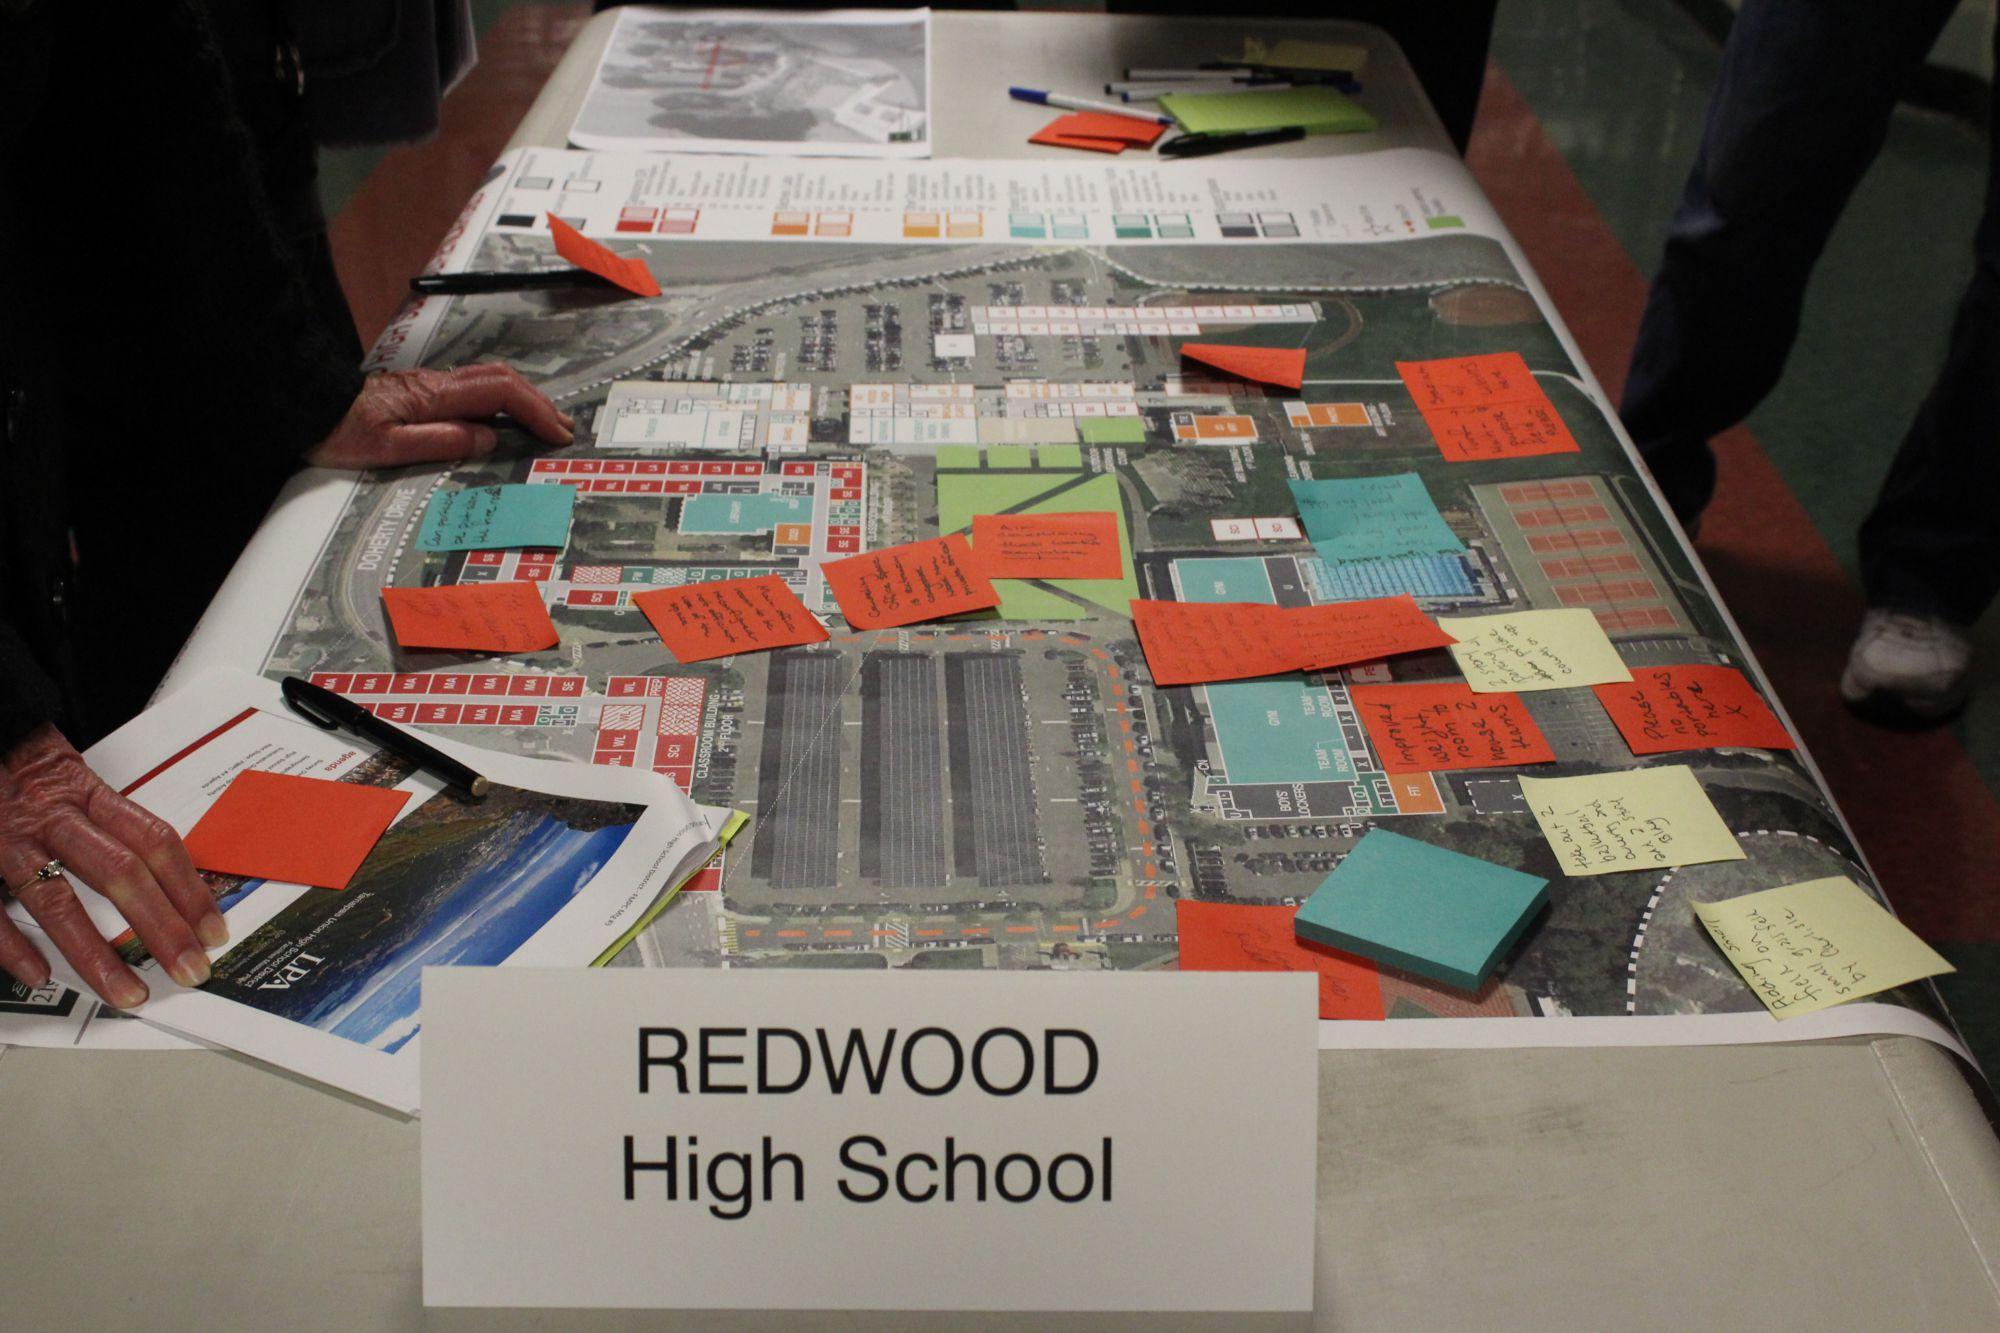 Covered in sticky notes, these plans showed critiques from community members on the current layout on campus.